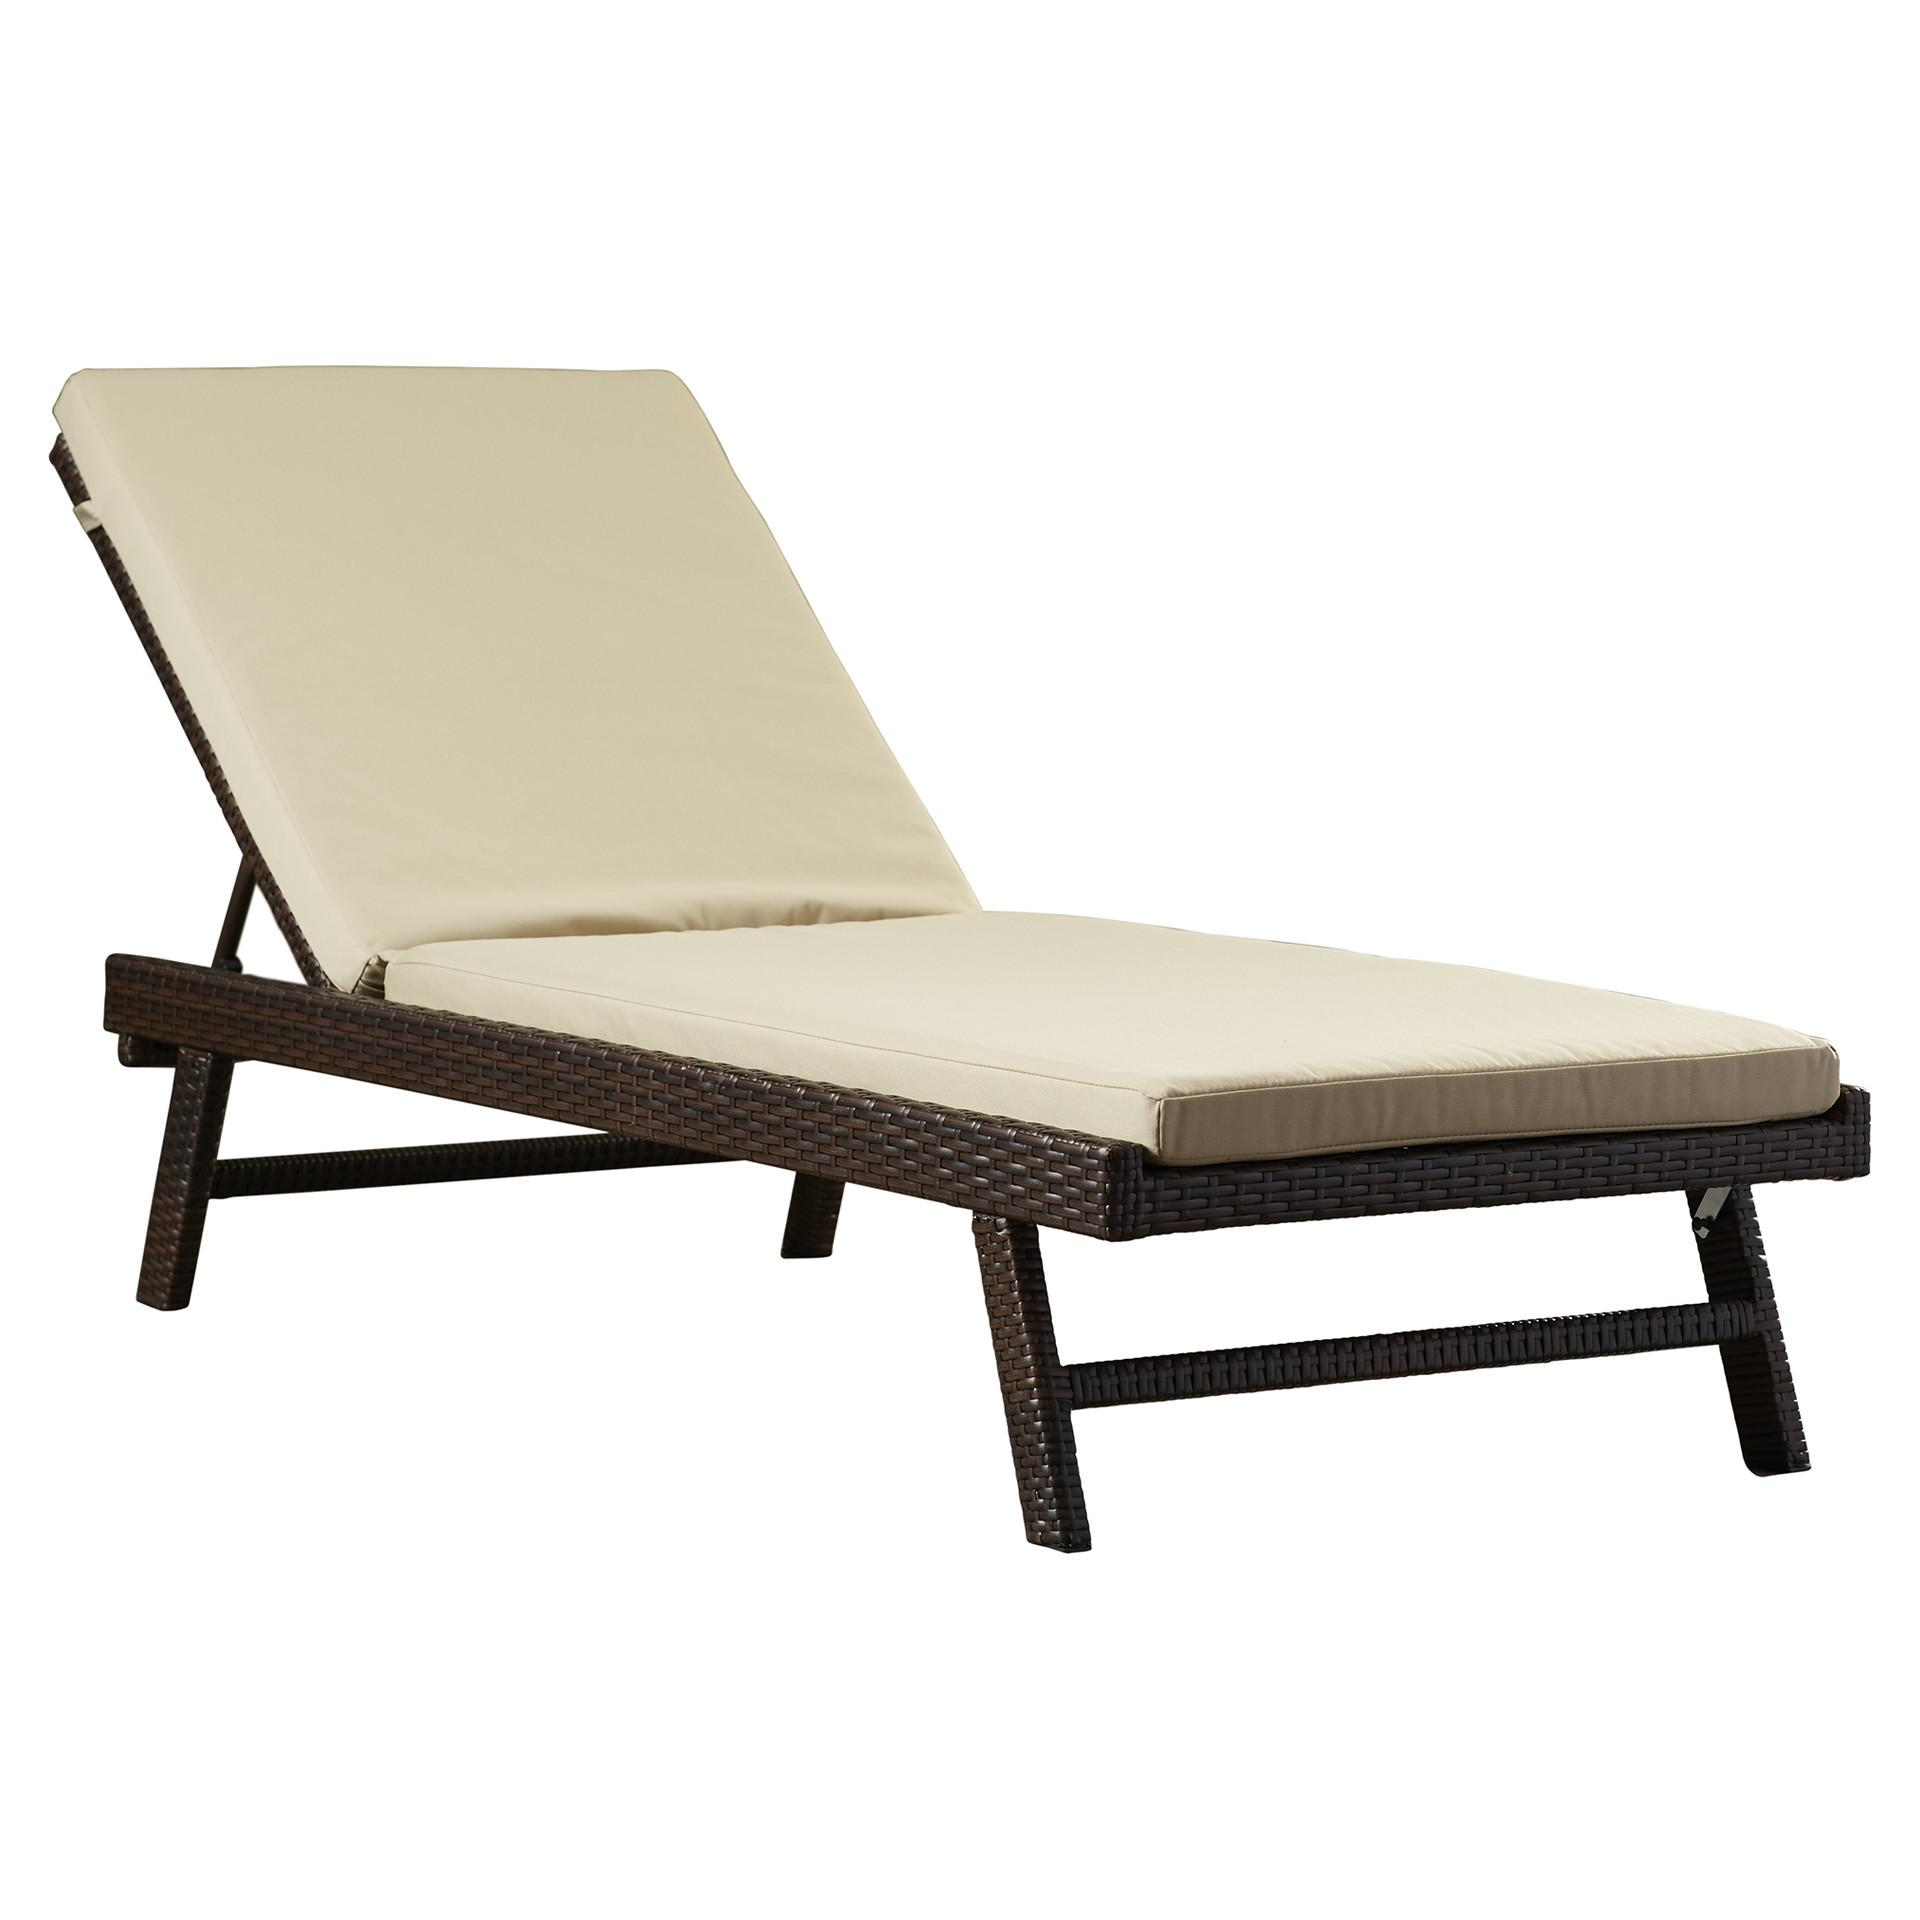 Beachcrest Home Calypso Chaise Lounge Cushion